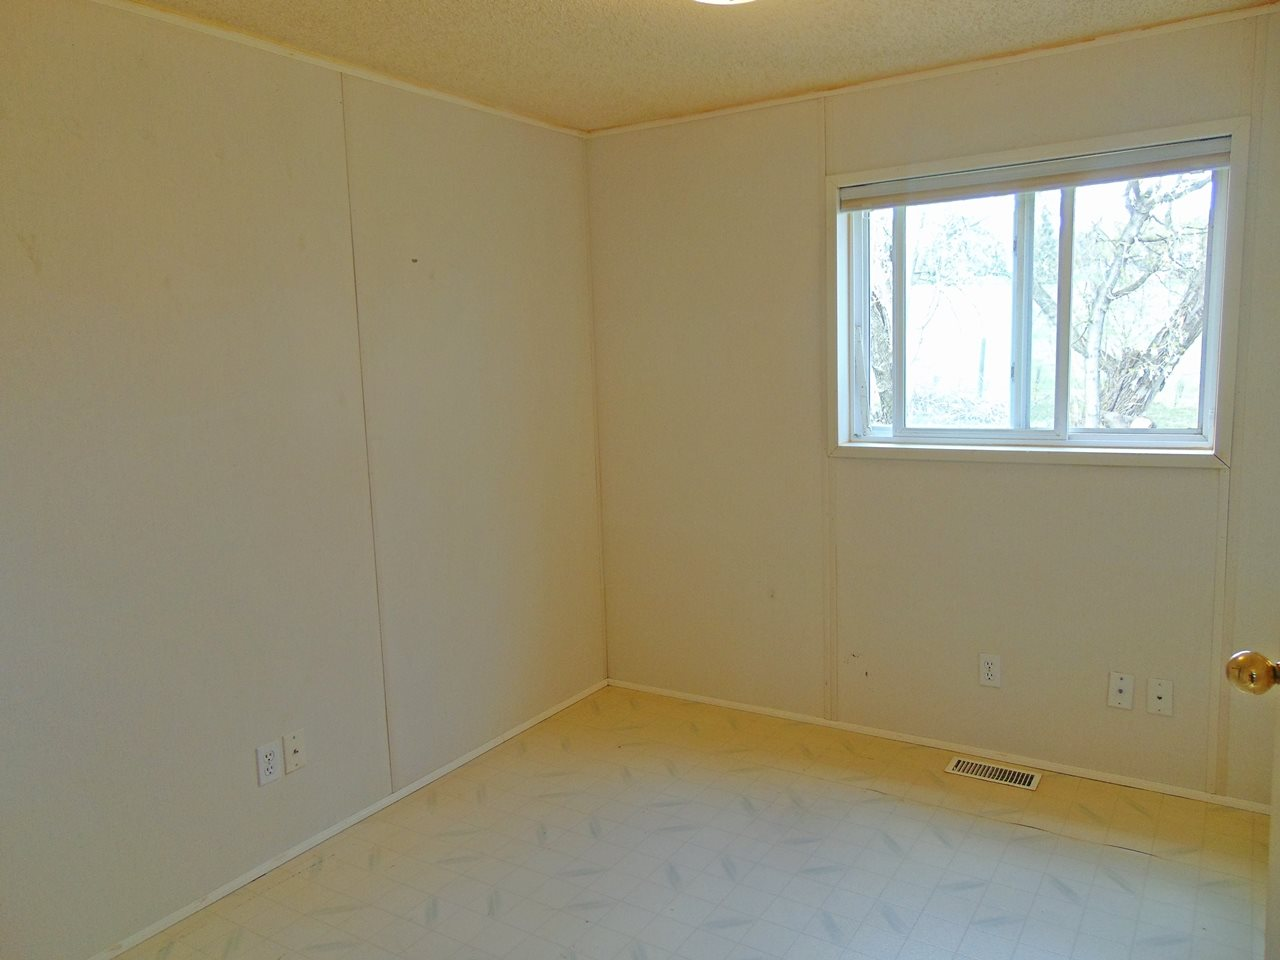 Photo 12: 56215 Rge Rd 234: Rural Sturgeon County Manufactured Home for sale : MLS(r) # E4063049